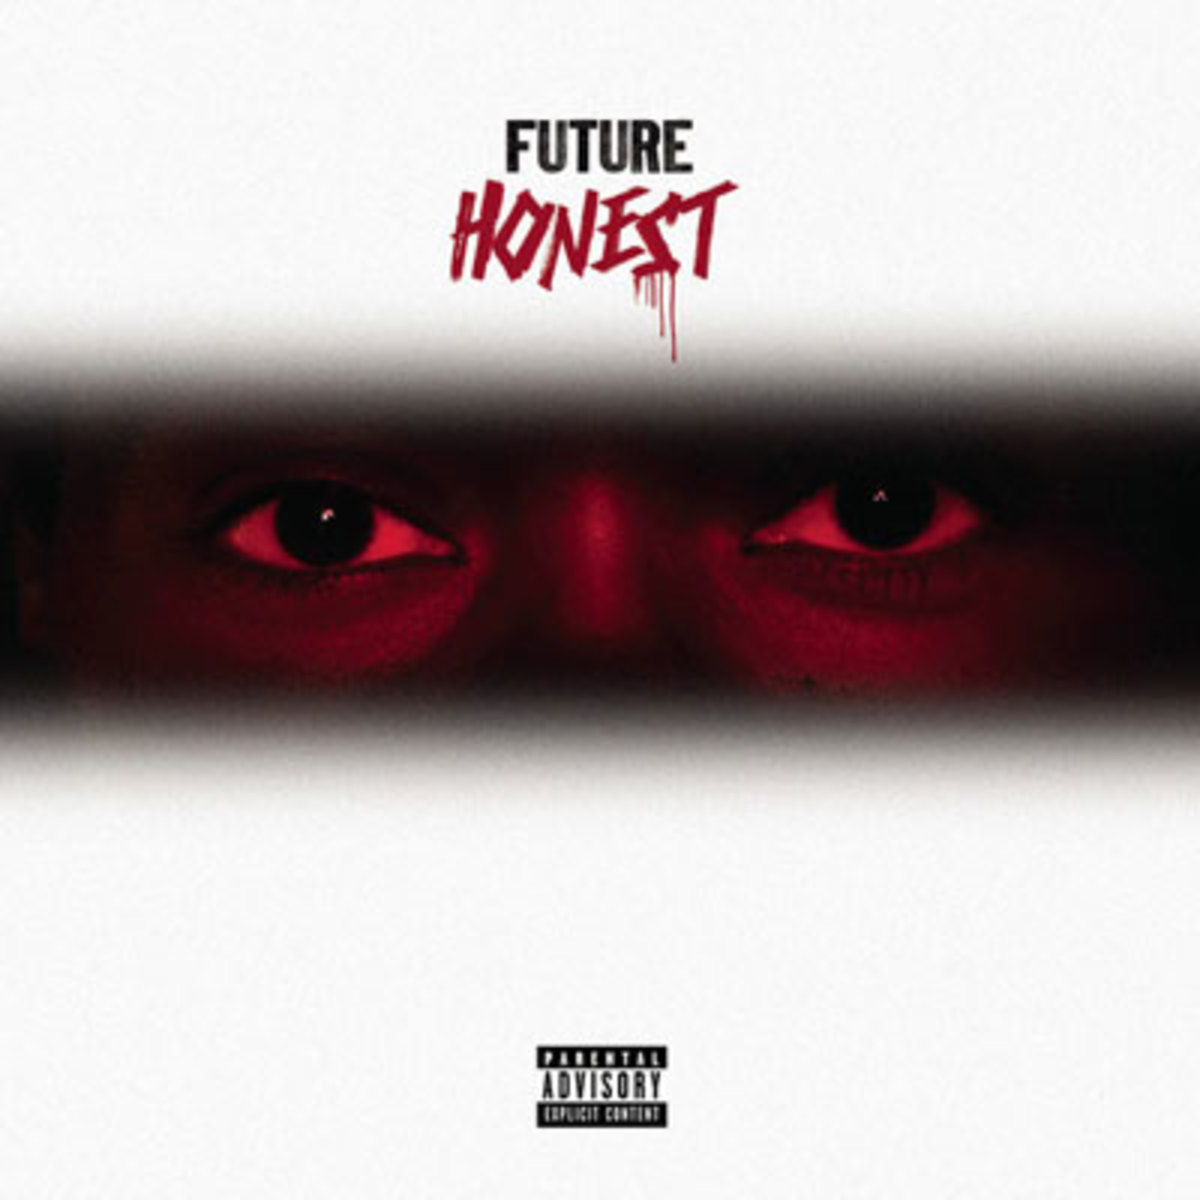 future-honestdel.jpg